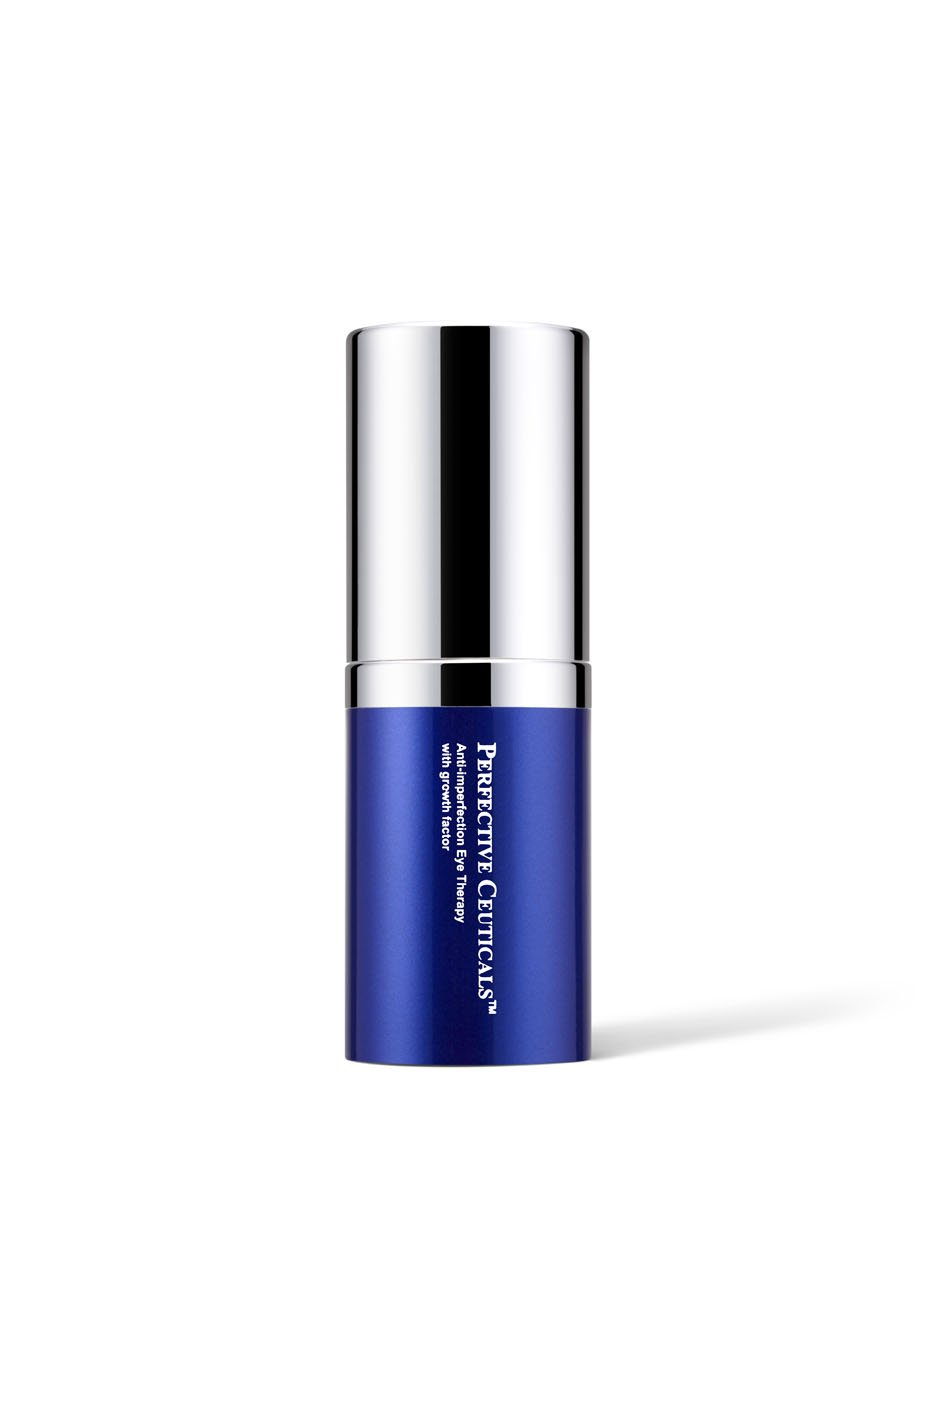 Anti-aging Eye Cream - Perfective Ceuticals Anti-imperfection Eye Therapy Cream with Growth Factor (Contains Retinol)